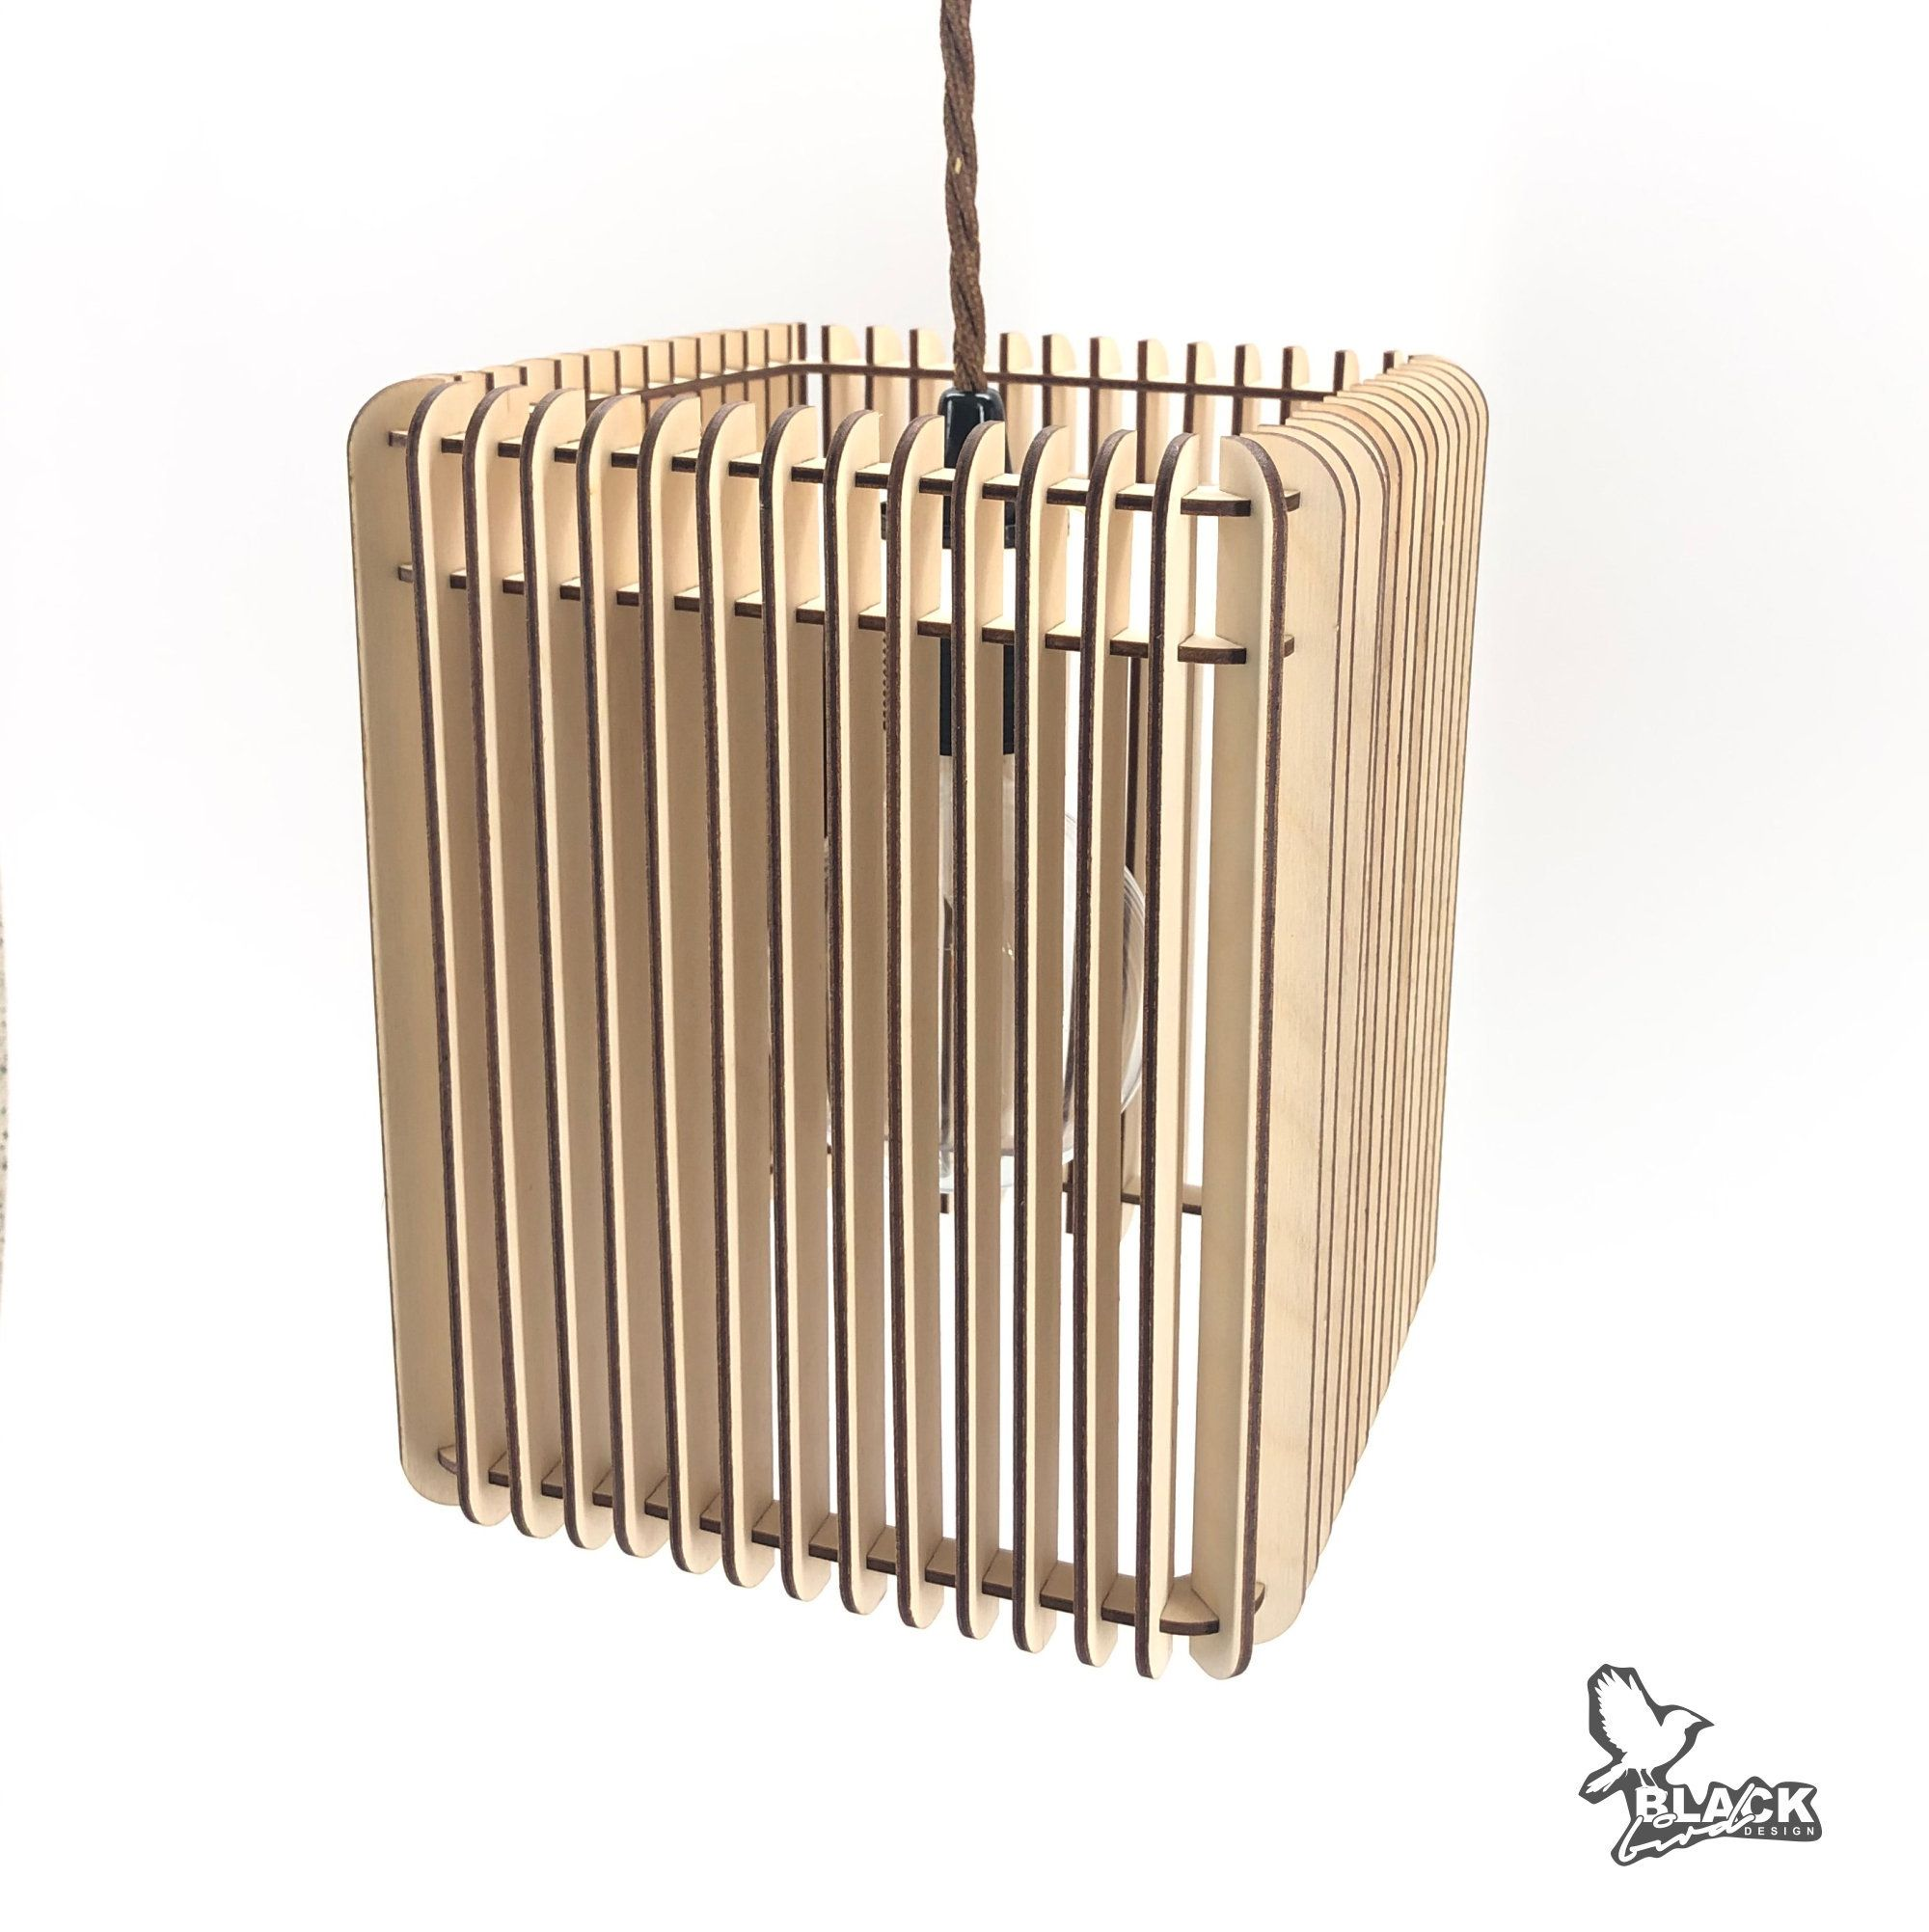 Modern birch plywood lamp, square wooden pendant light